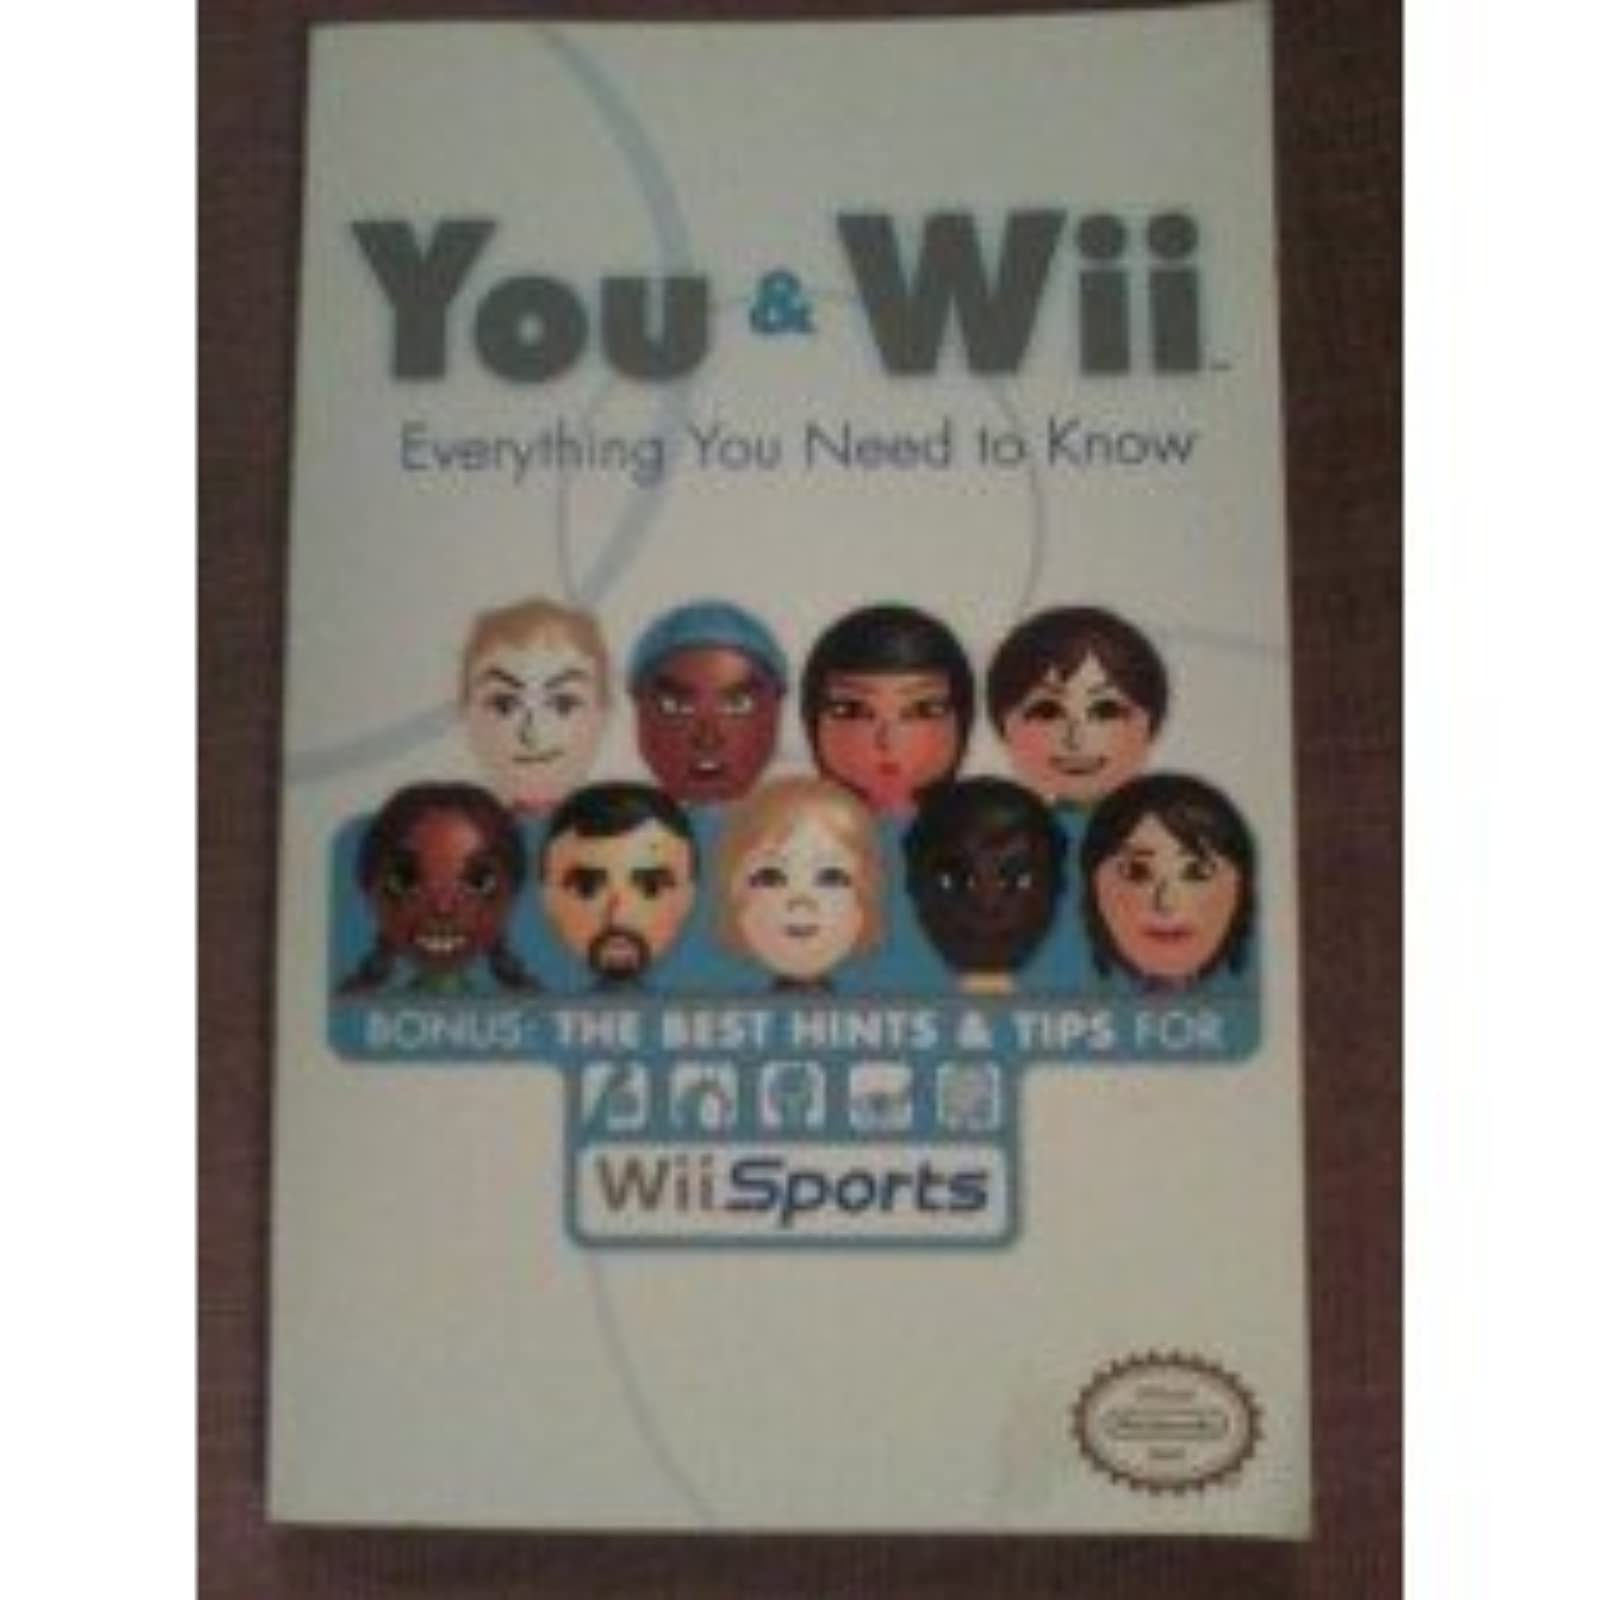 You And Wii Strategy Guide For Wii Sports